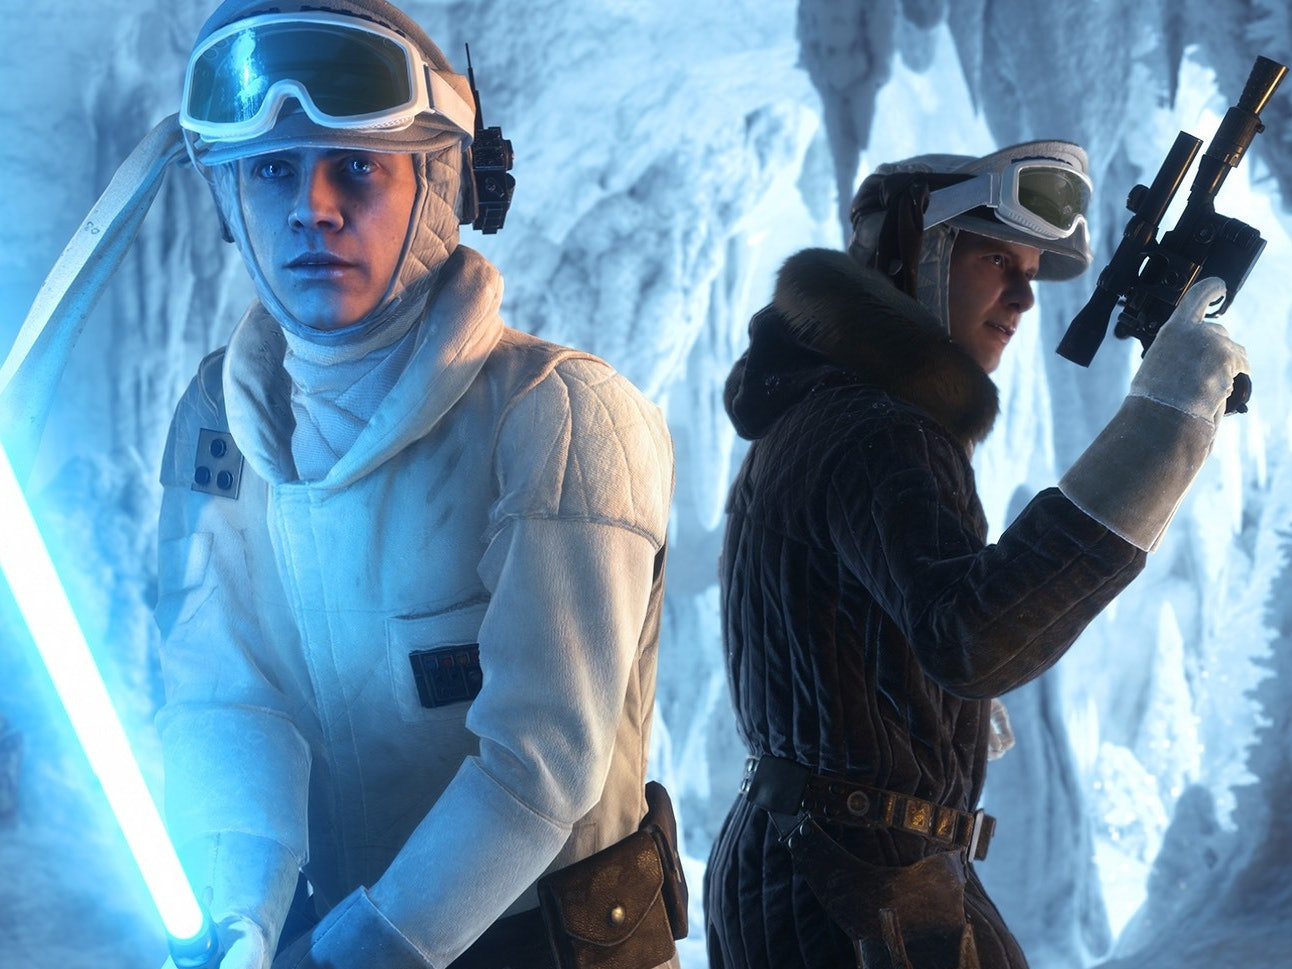 'Star Wars Battlefront' Made the Wrong Decision by Sticking to the Original Trilogy